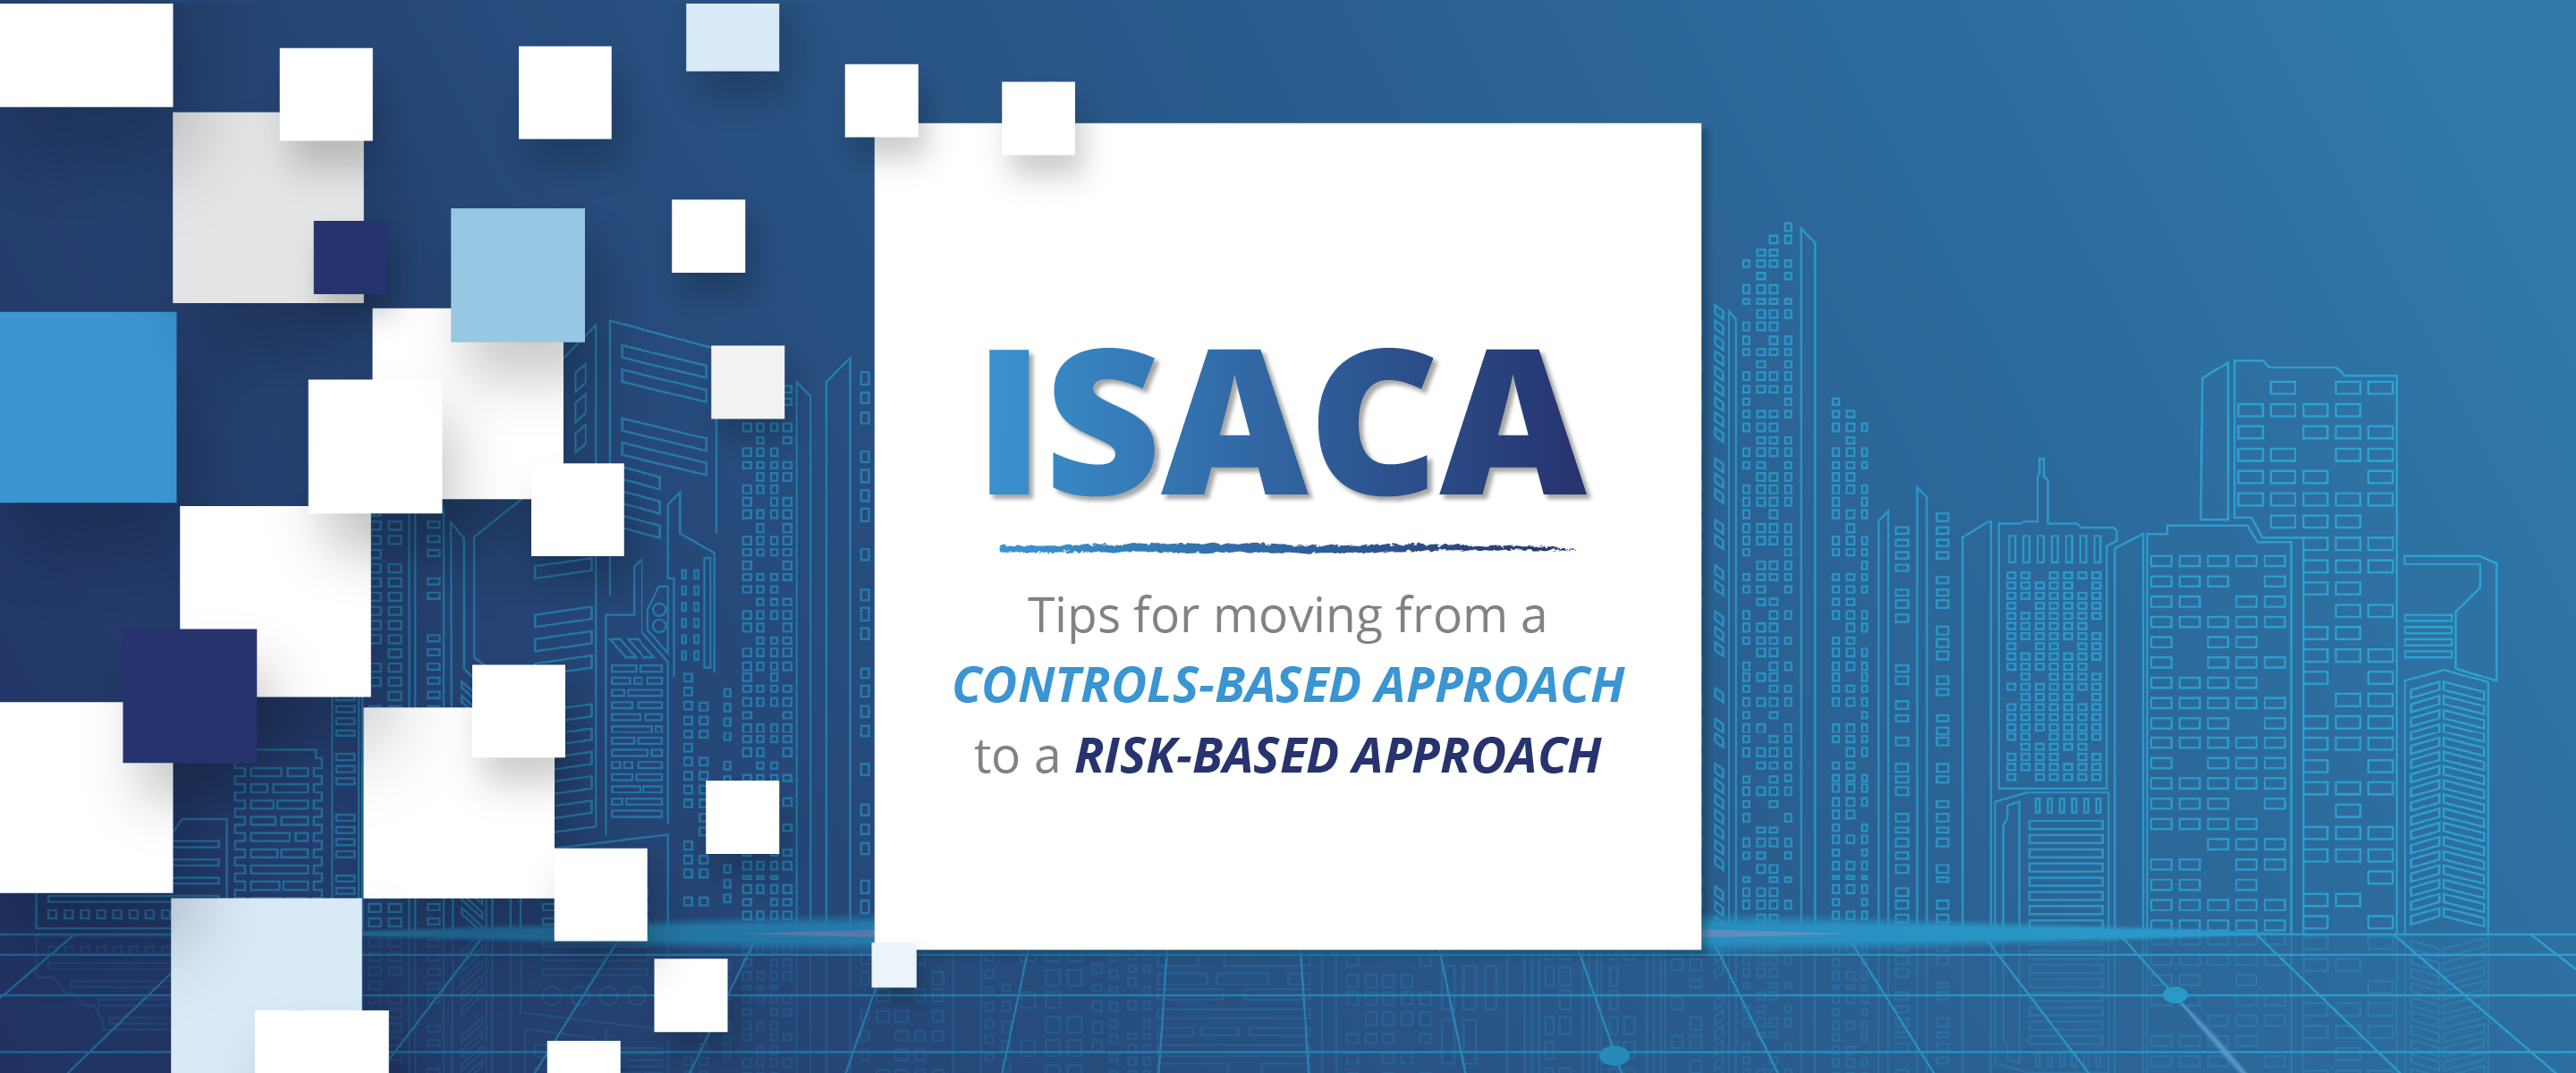 ISACA: Tips for Moving From a Controls-Based Approach to a Risk-Based Approach